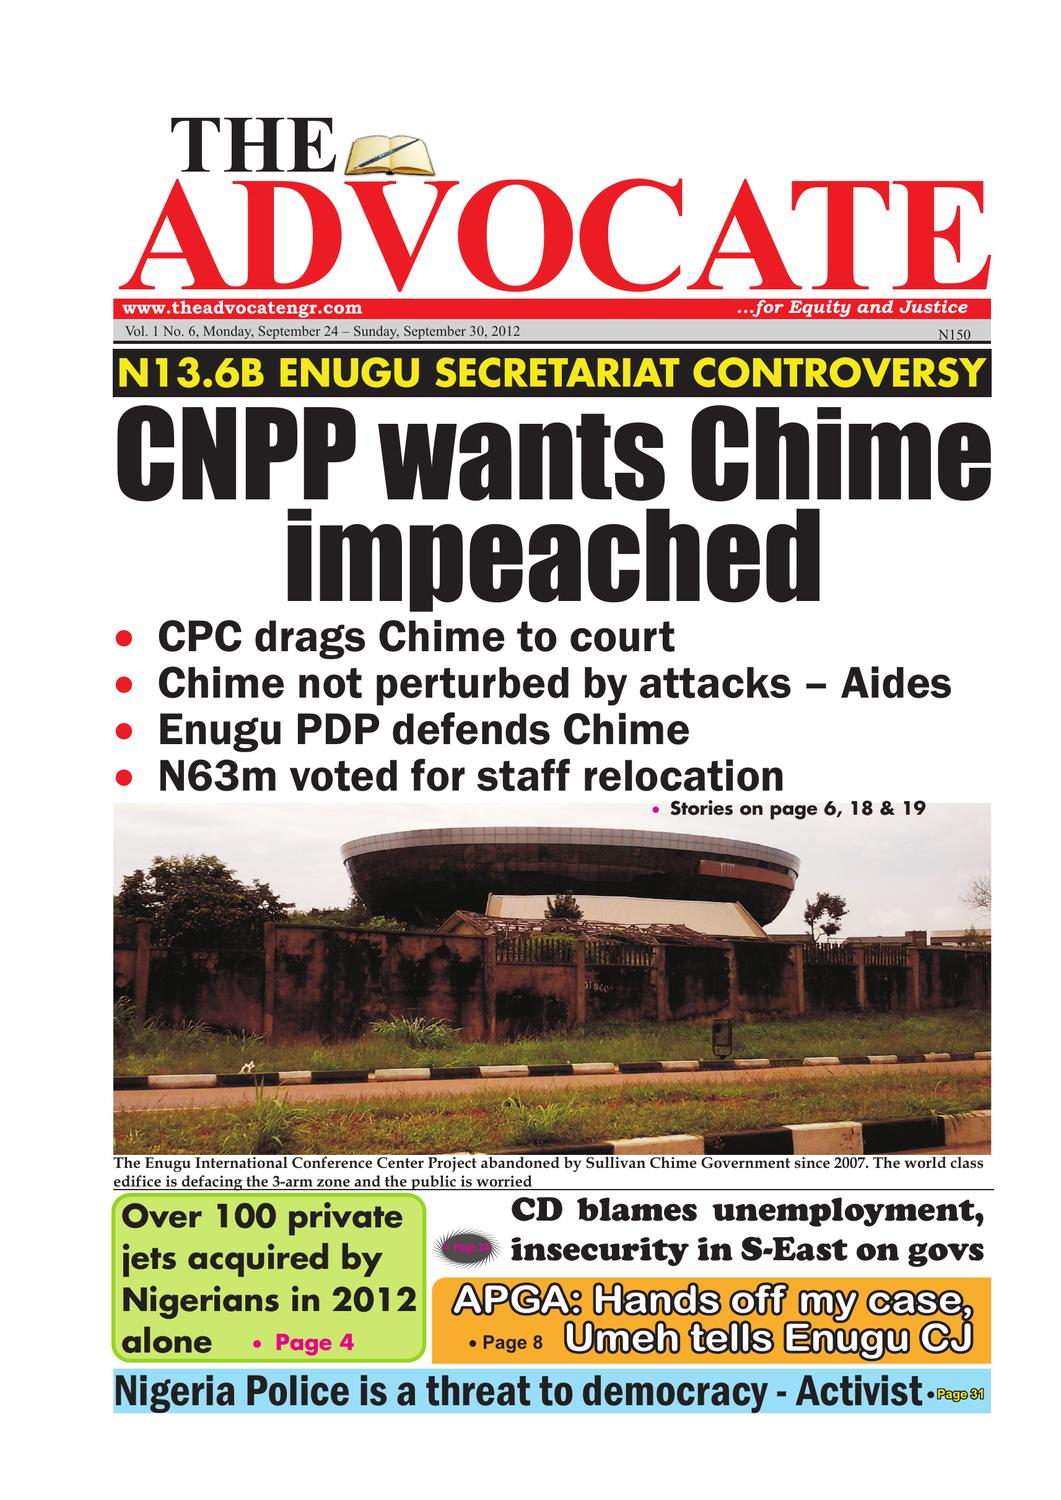 CNPP Wants Chime Impeached By Advocate Nigeria